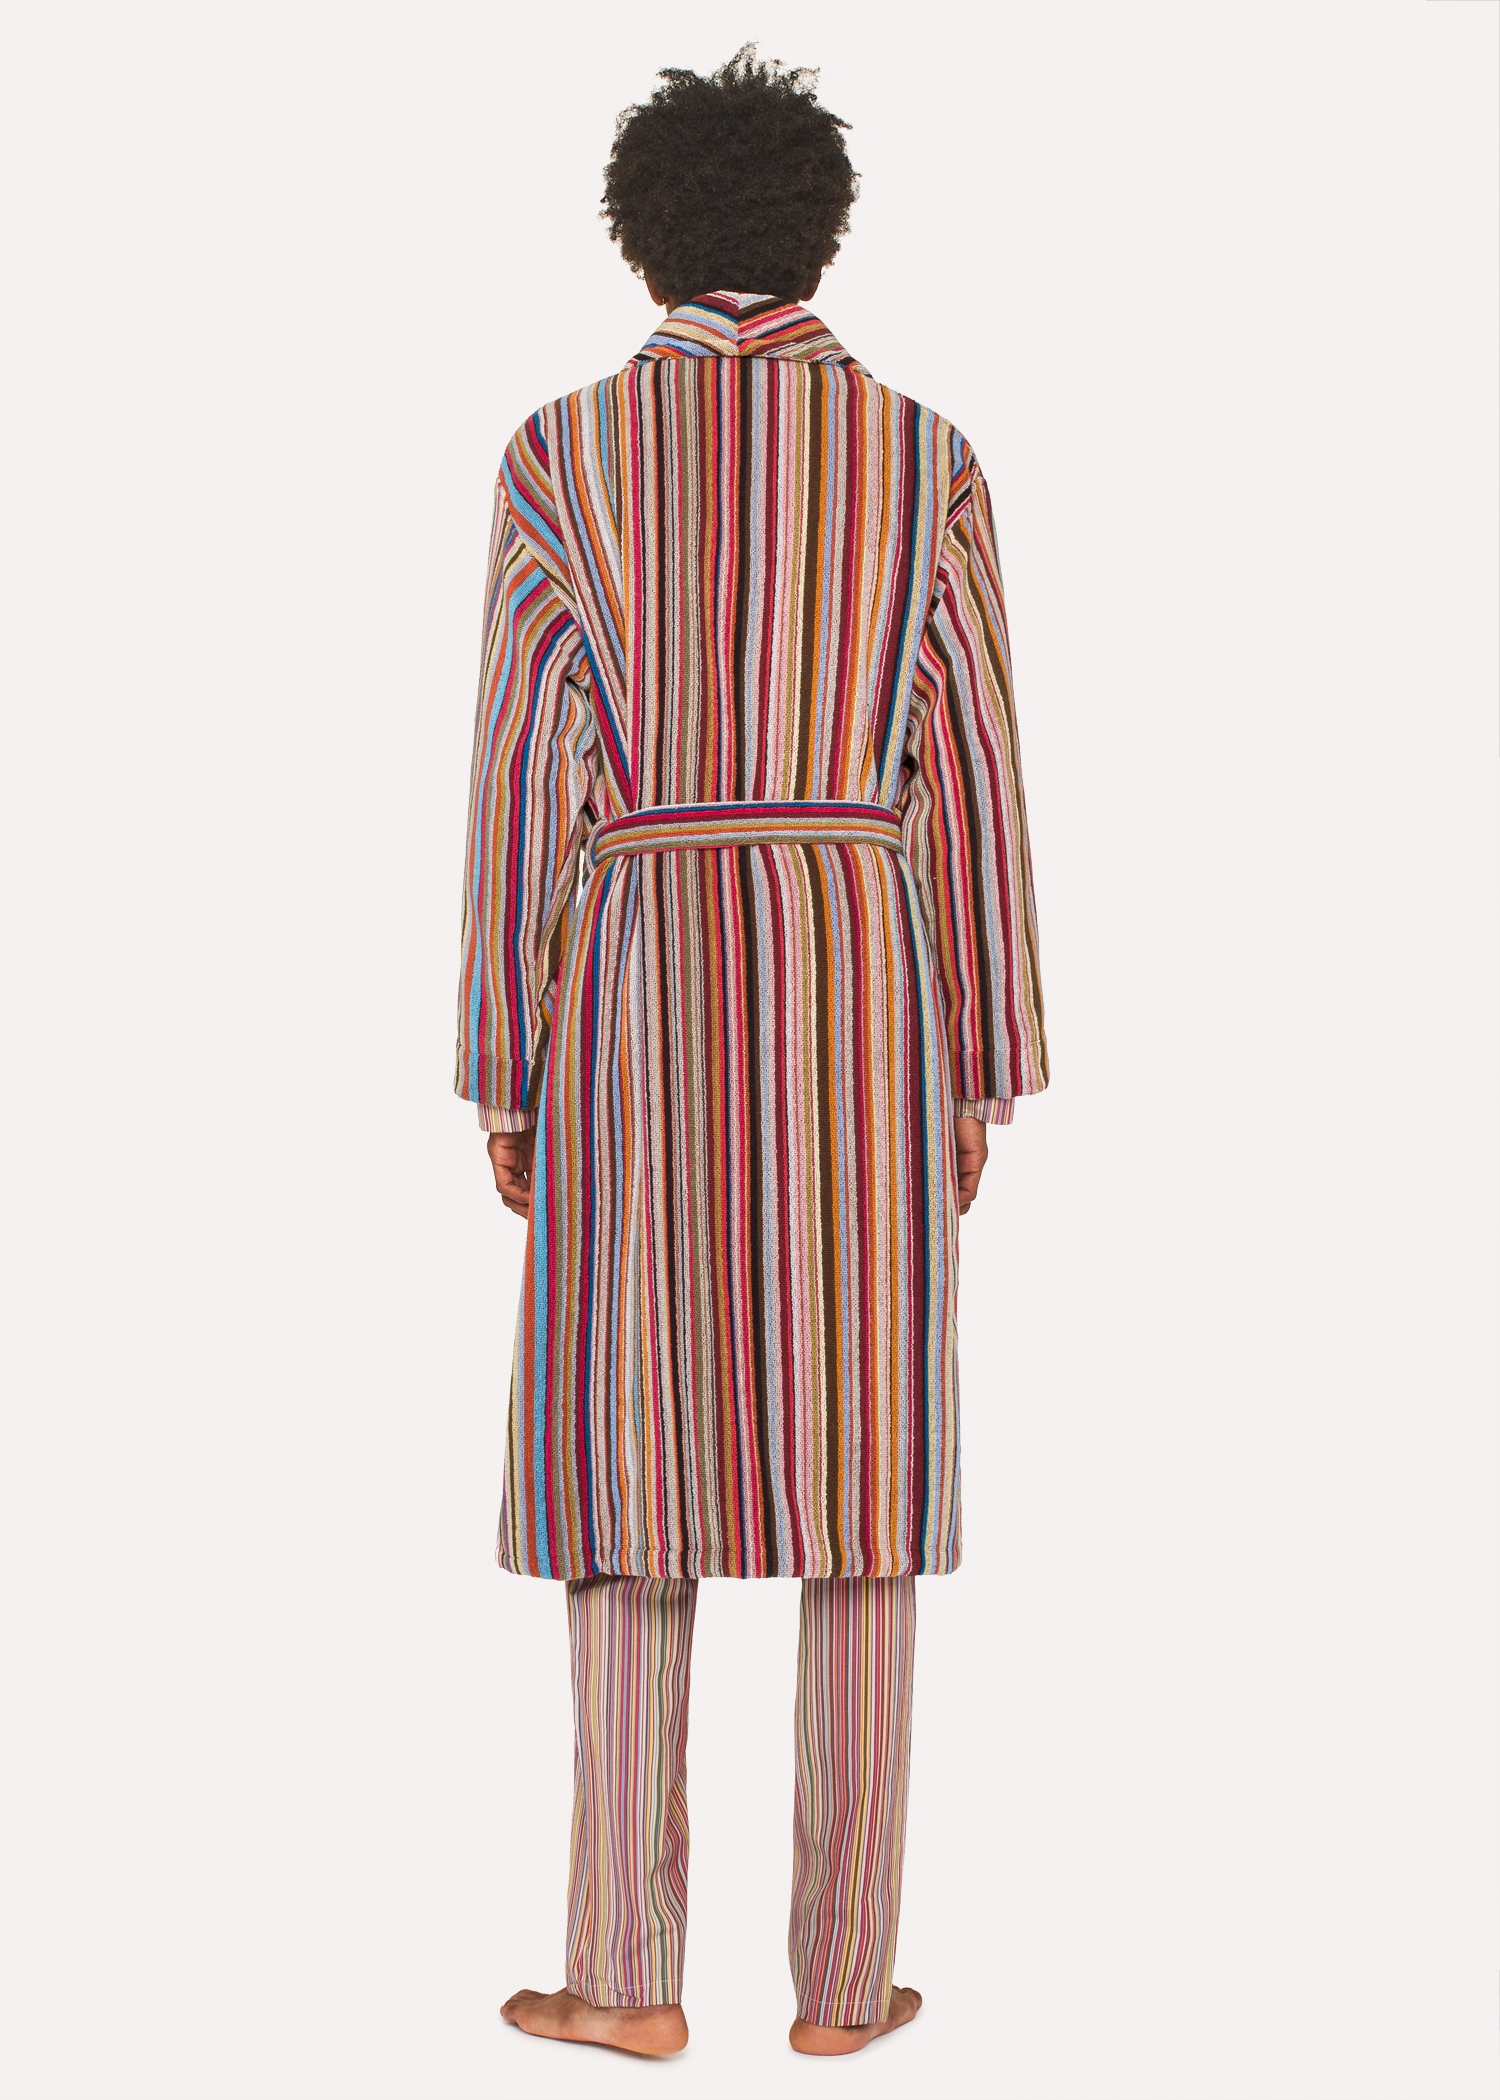 a74f4f9efe12 Men s Signature Striped Towelling Dressing Gown by Paul Smith